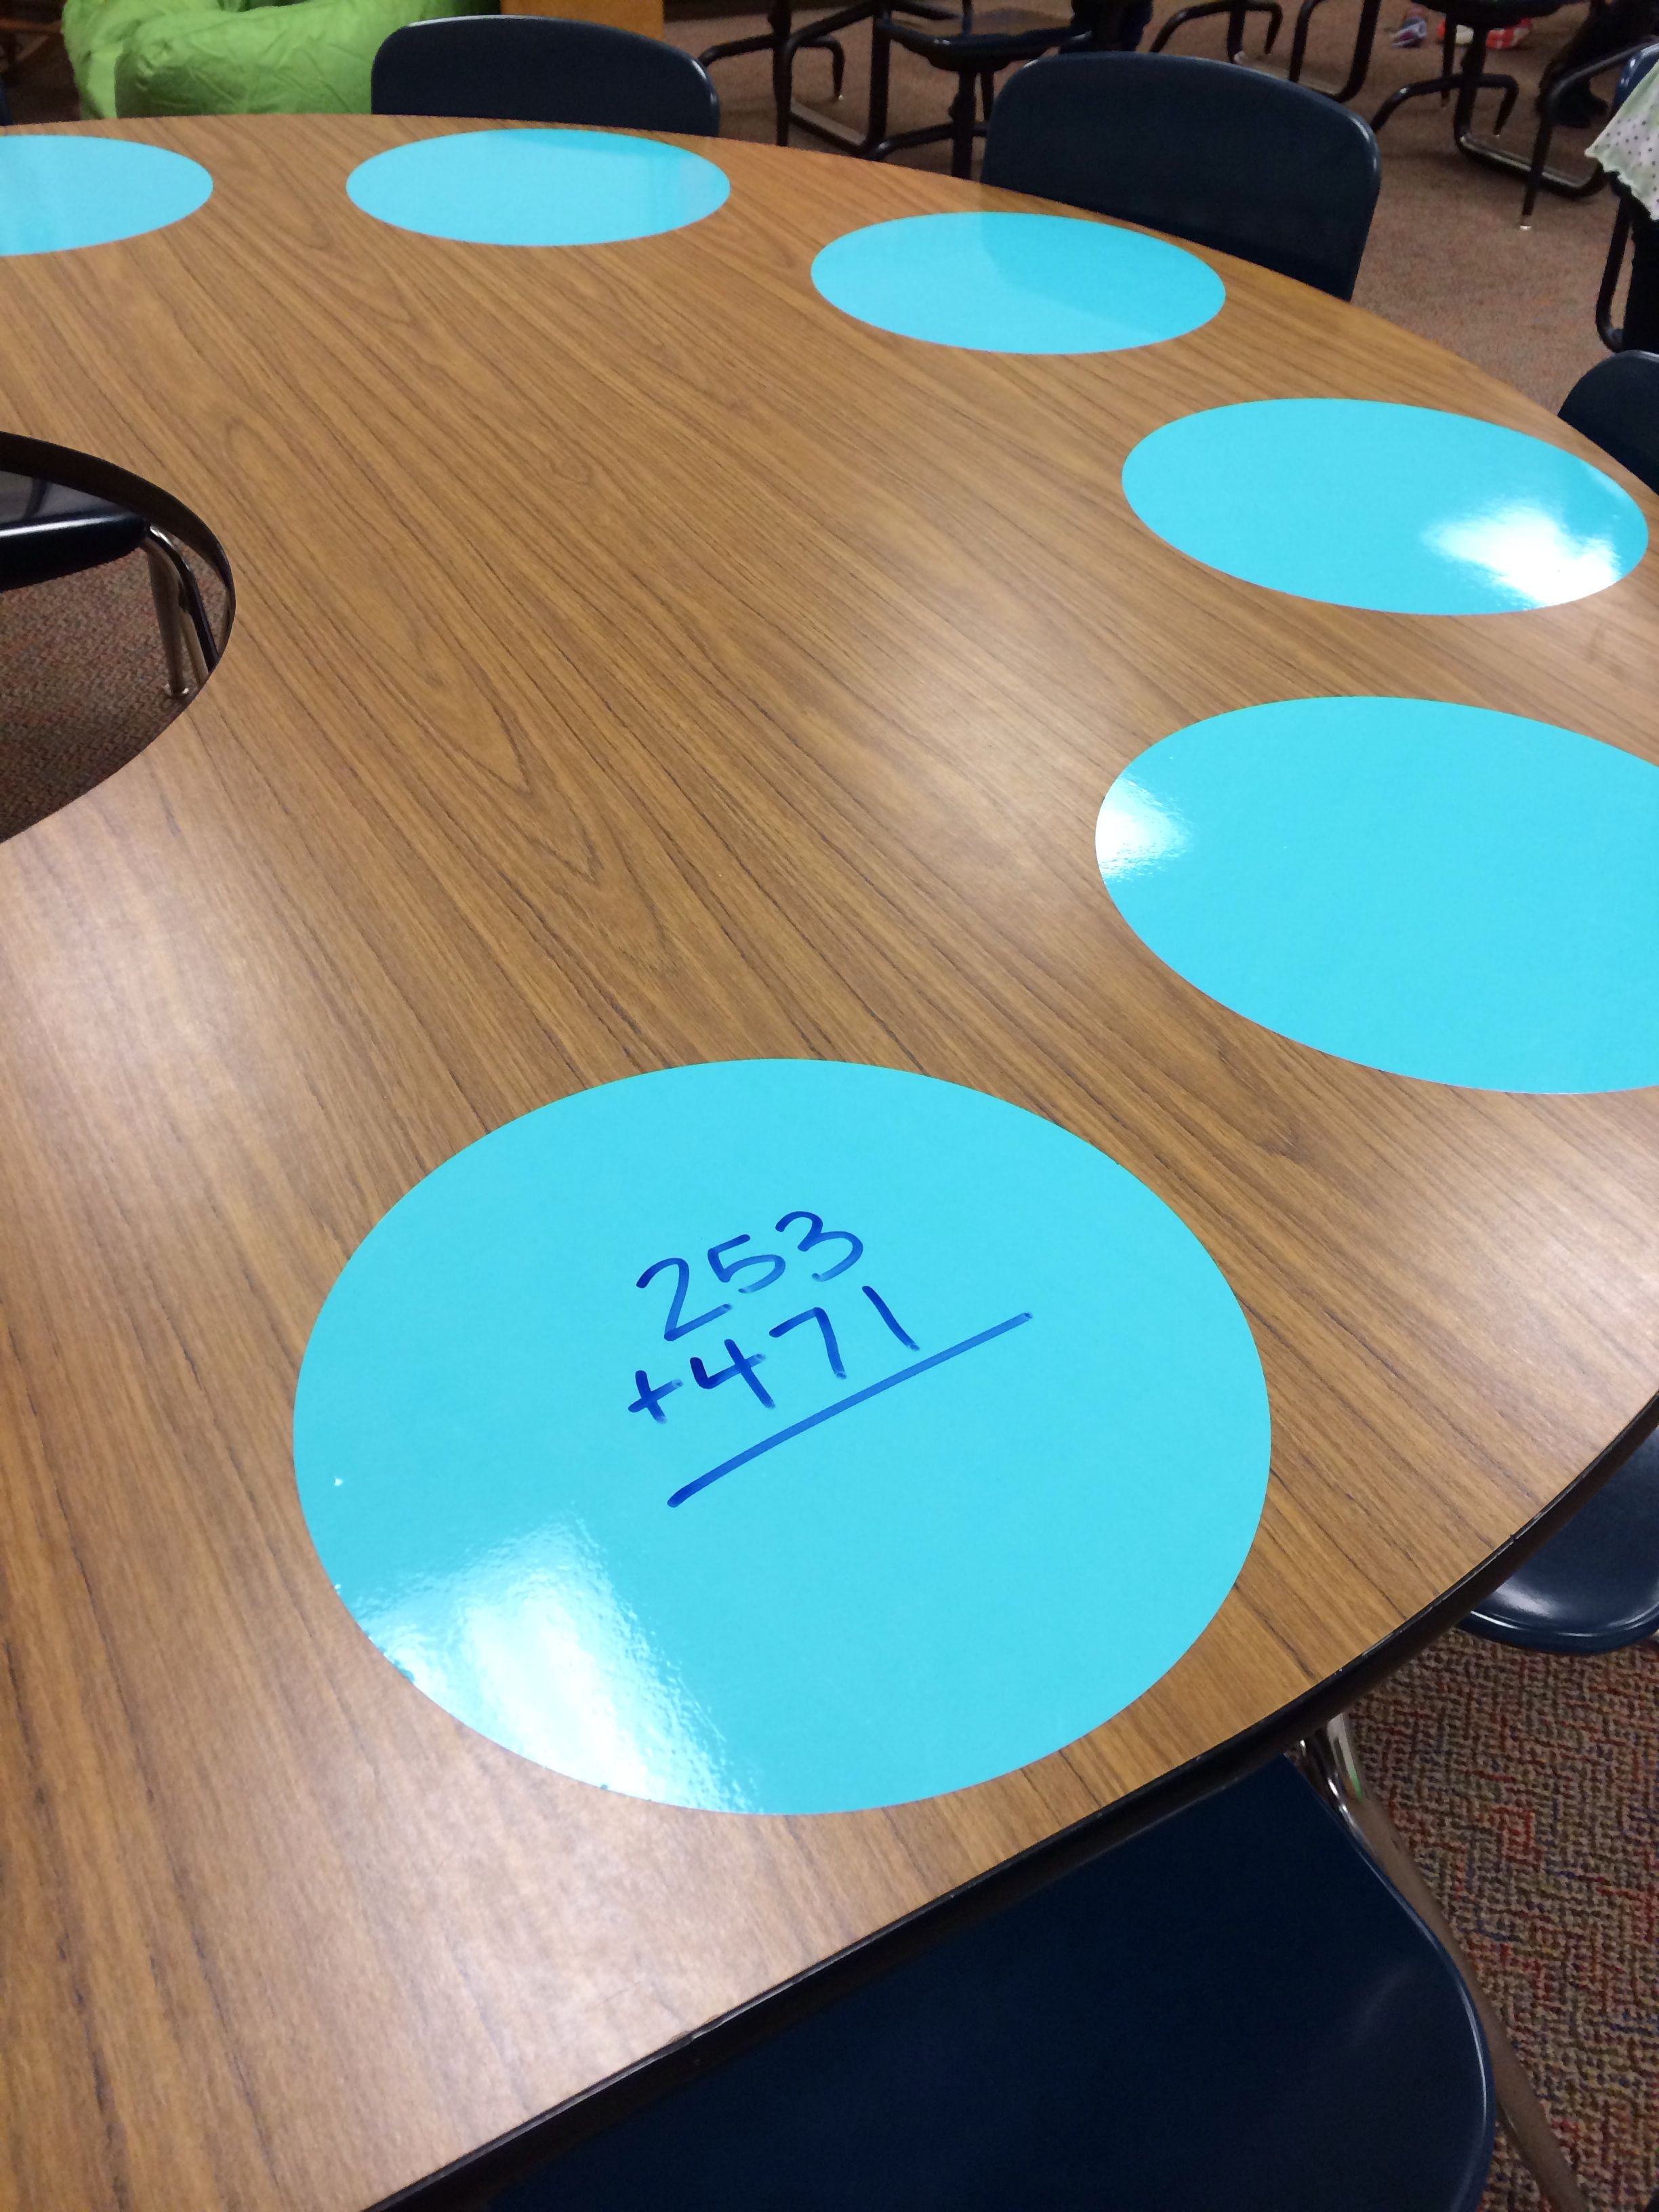 Try Wall Pop Dry Erase Stickers On A Table In Your Classroom I